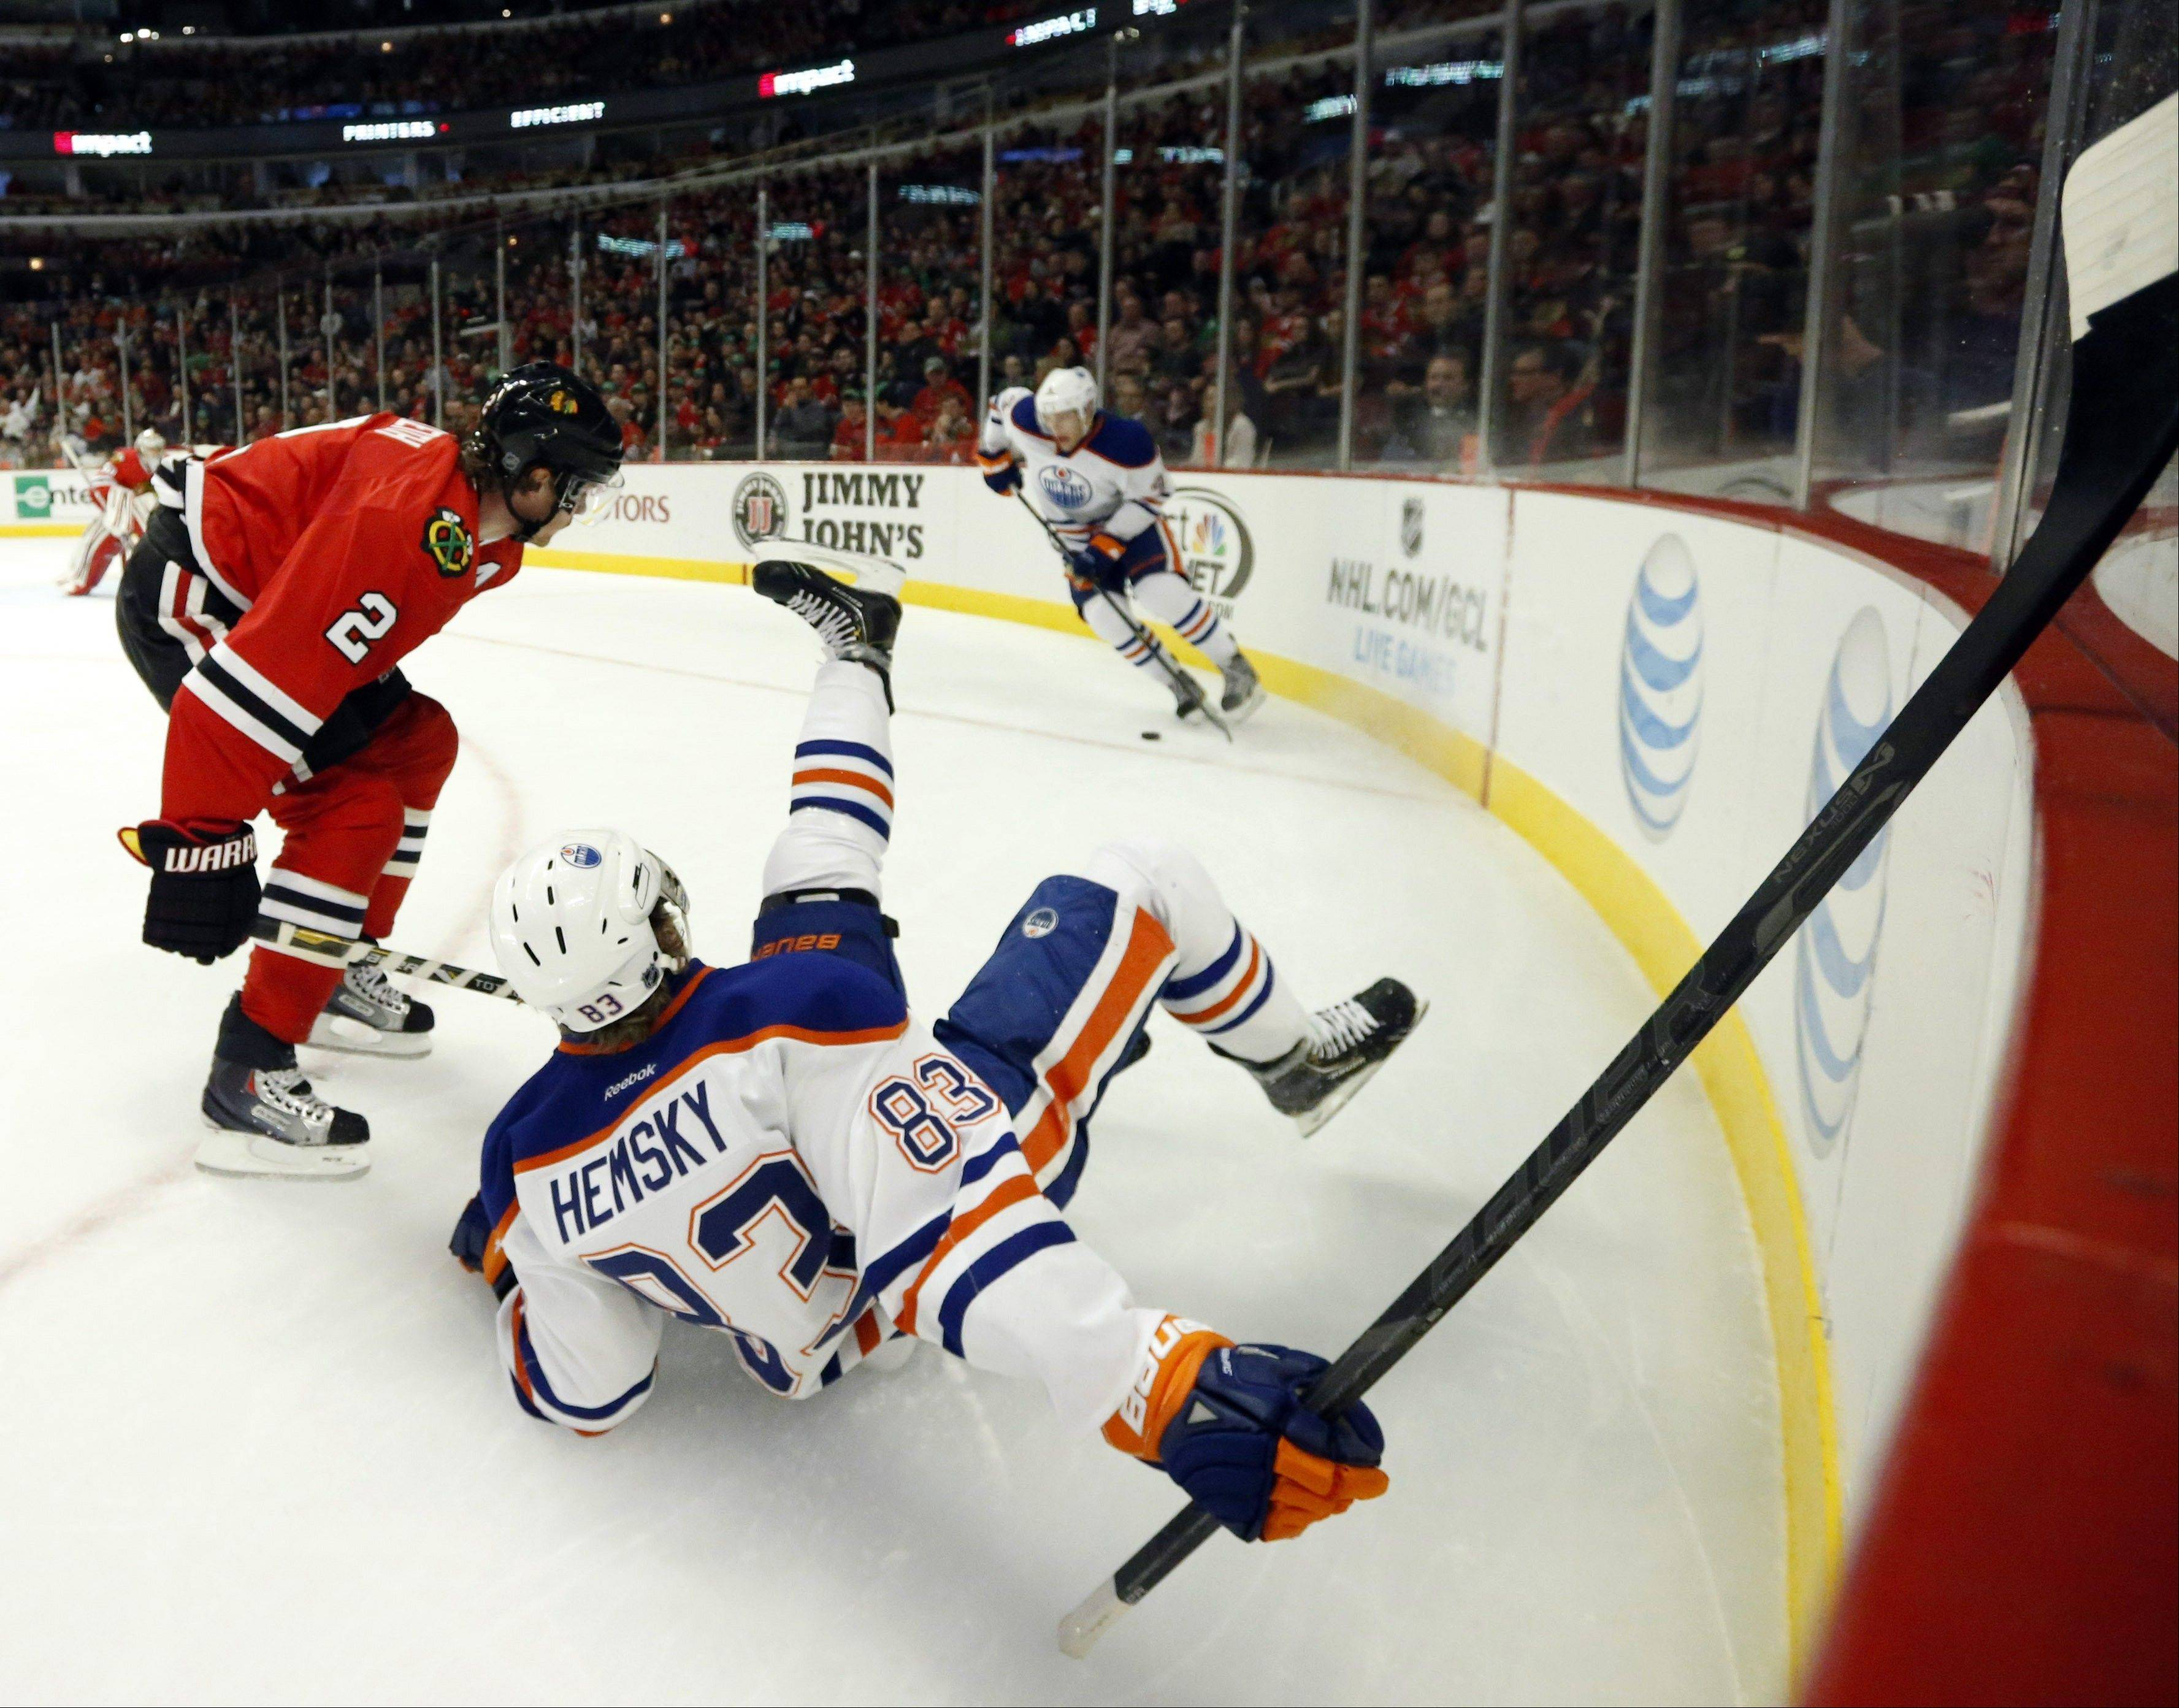 ASSOCIATED PRESS Chicago Blackhawks defenseman Duncan Keith (2) checks Edmonton Oilers right wing Ales Hemsky, from the Czech Republic, to the ice during the first period.